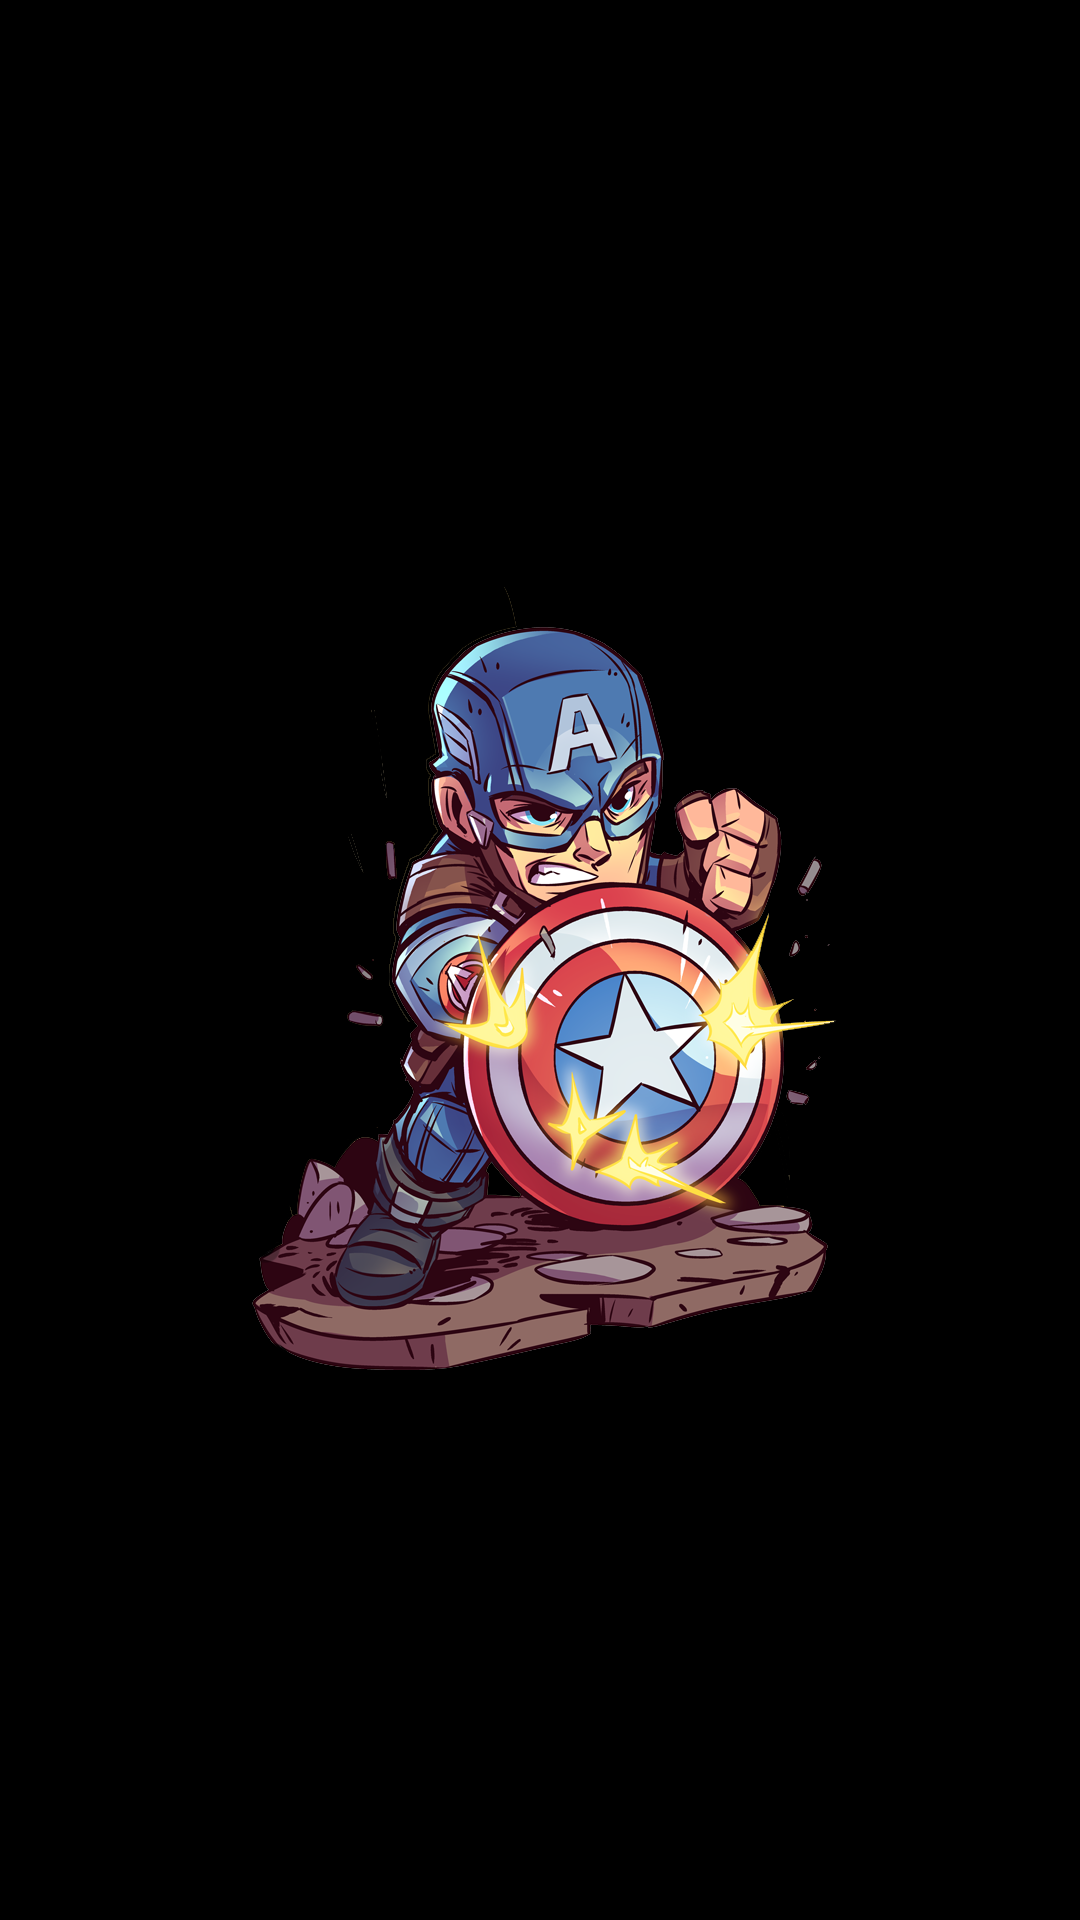 10 Amoled Phone Wallpapers Cool Wallpapers Heroscreen Cc In 2020 Marvel Wallpaper Hd Marvel Wallpaper Marvel Phone Wallpaper